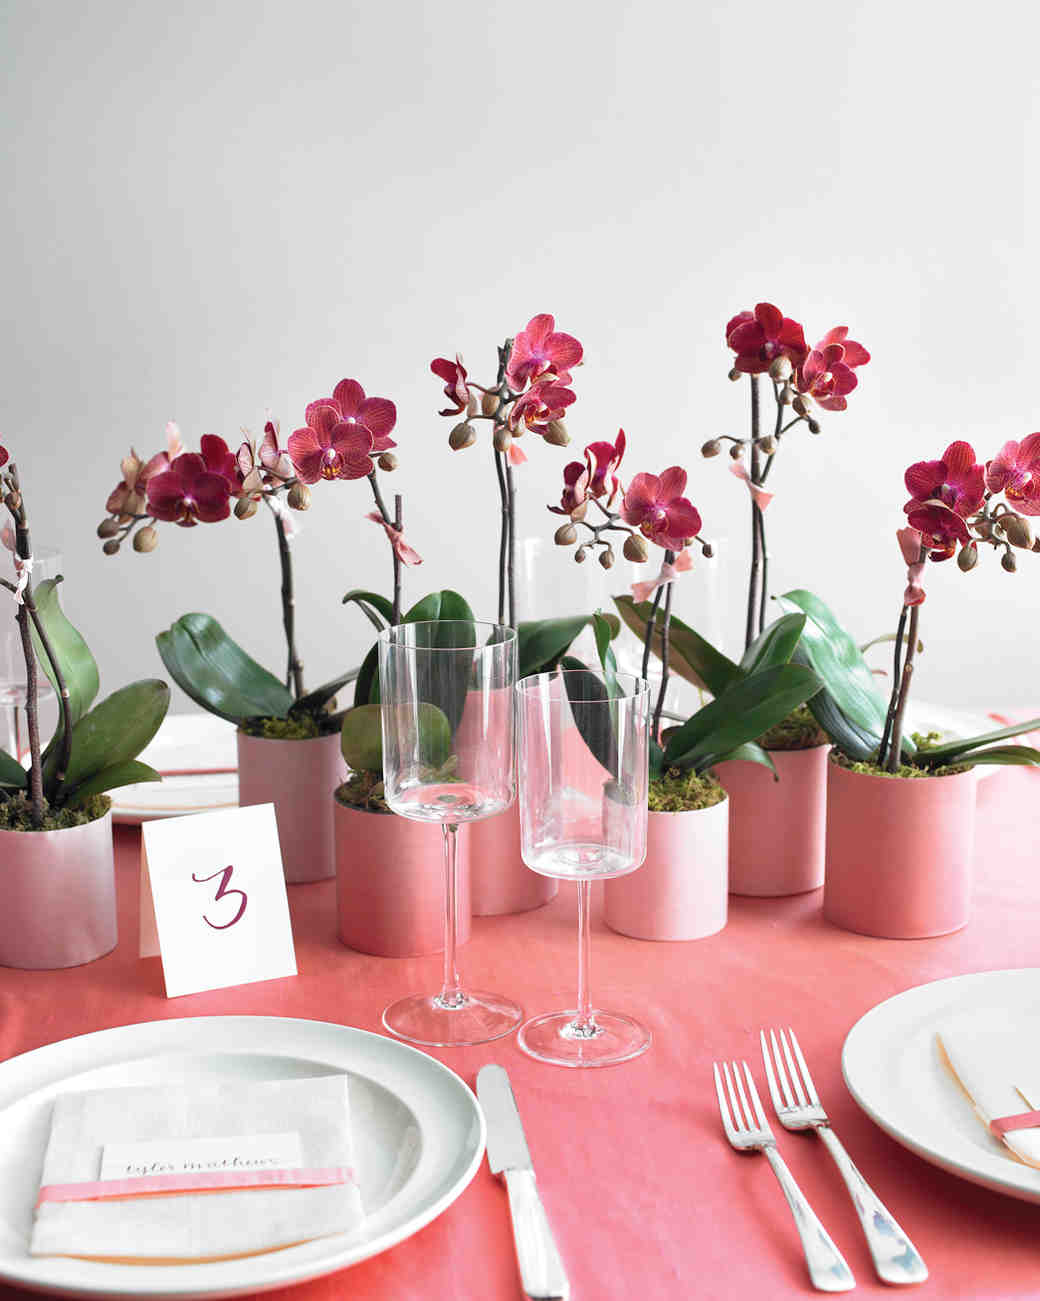 Wedding Centerpieces That Double as Favors | Martha Stewart Weddings